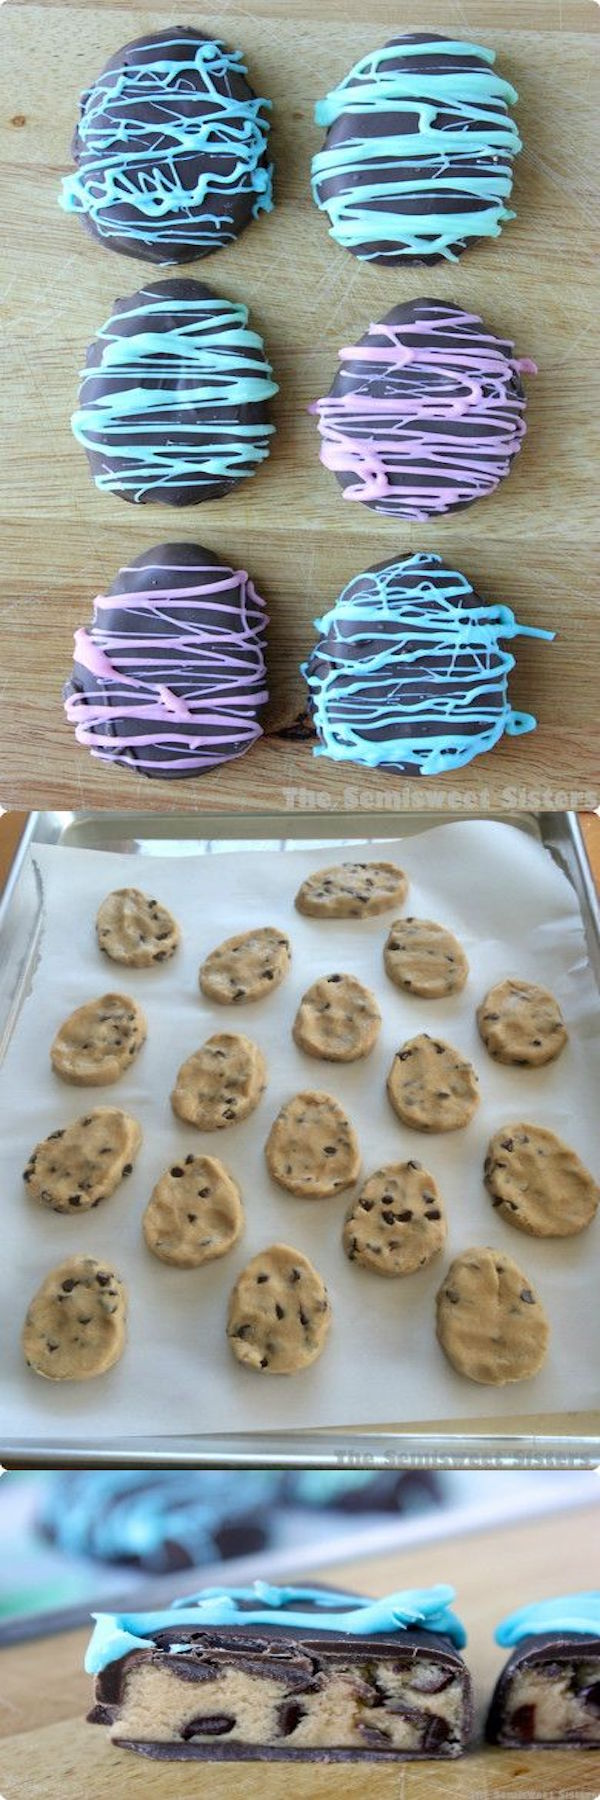 chocolate chip cookie dough eggs